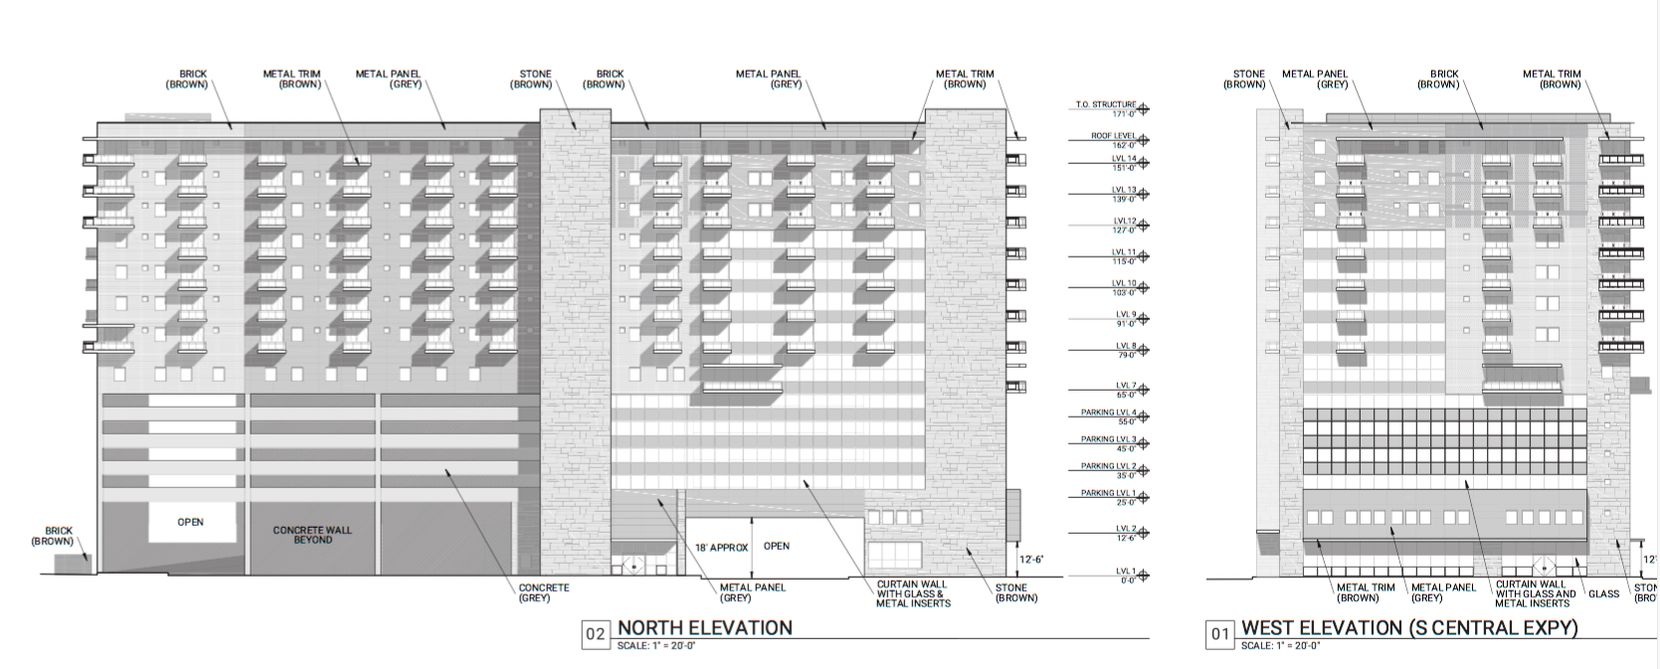 A 14-story apartment and retail tower would be constructed on the north side of the property.